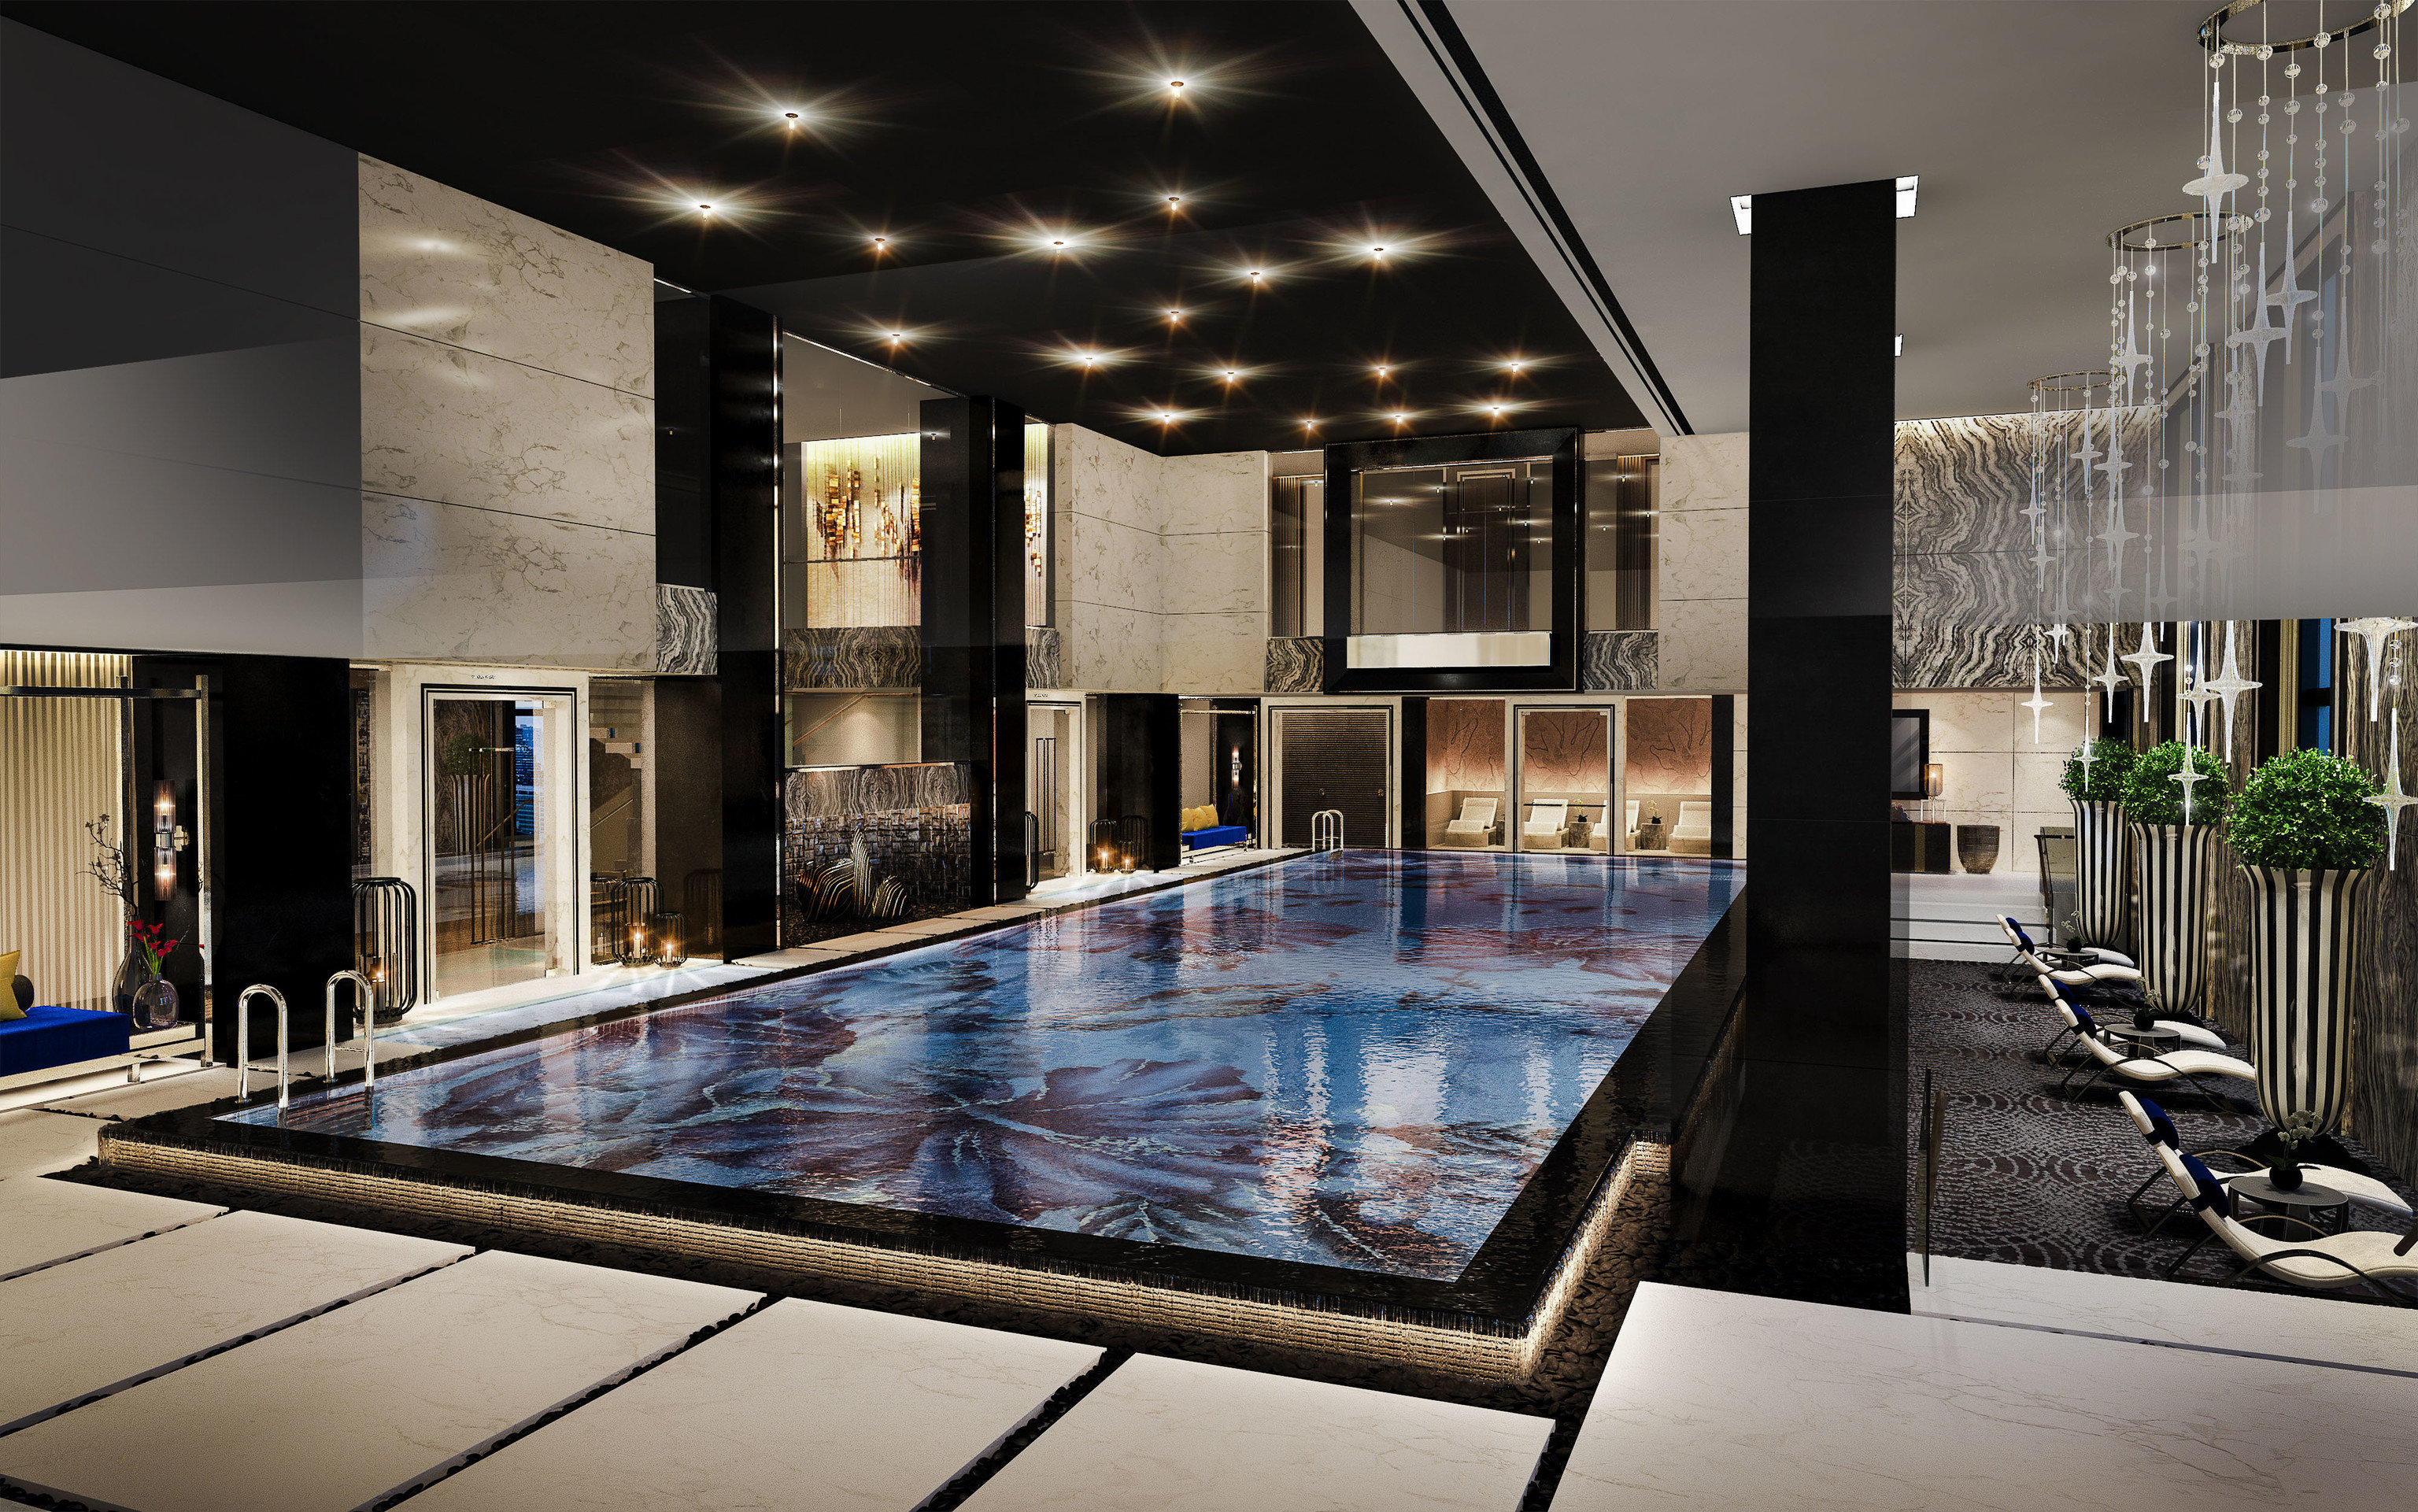 Boutique Hotels Luxury Travel ceiling indoor interior design Architecture condominium apartment Lobby swimming pool real estate daylighting penthouse apartment house estate amenity